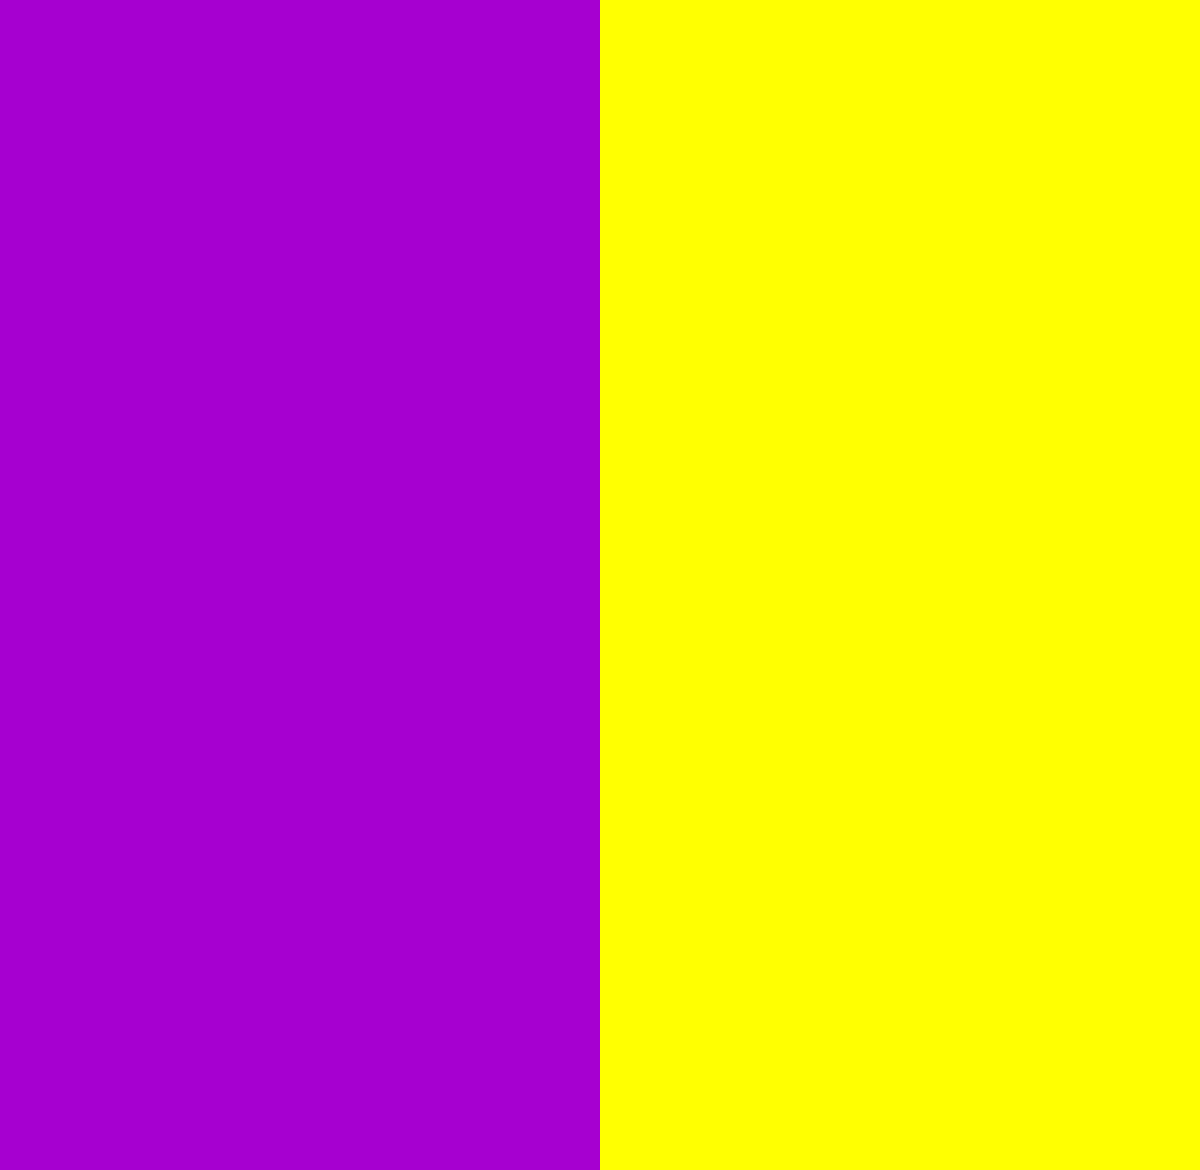 Two vertical bars of colour. Violet is on the left, yellow on the right.